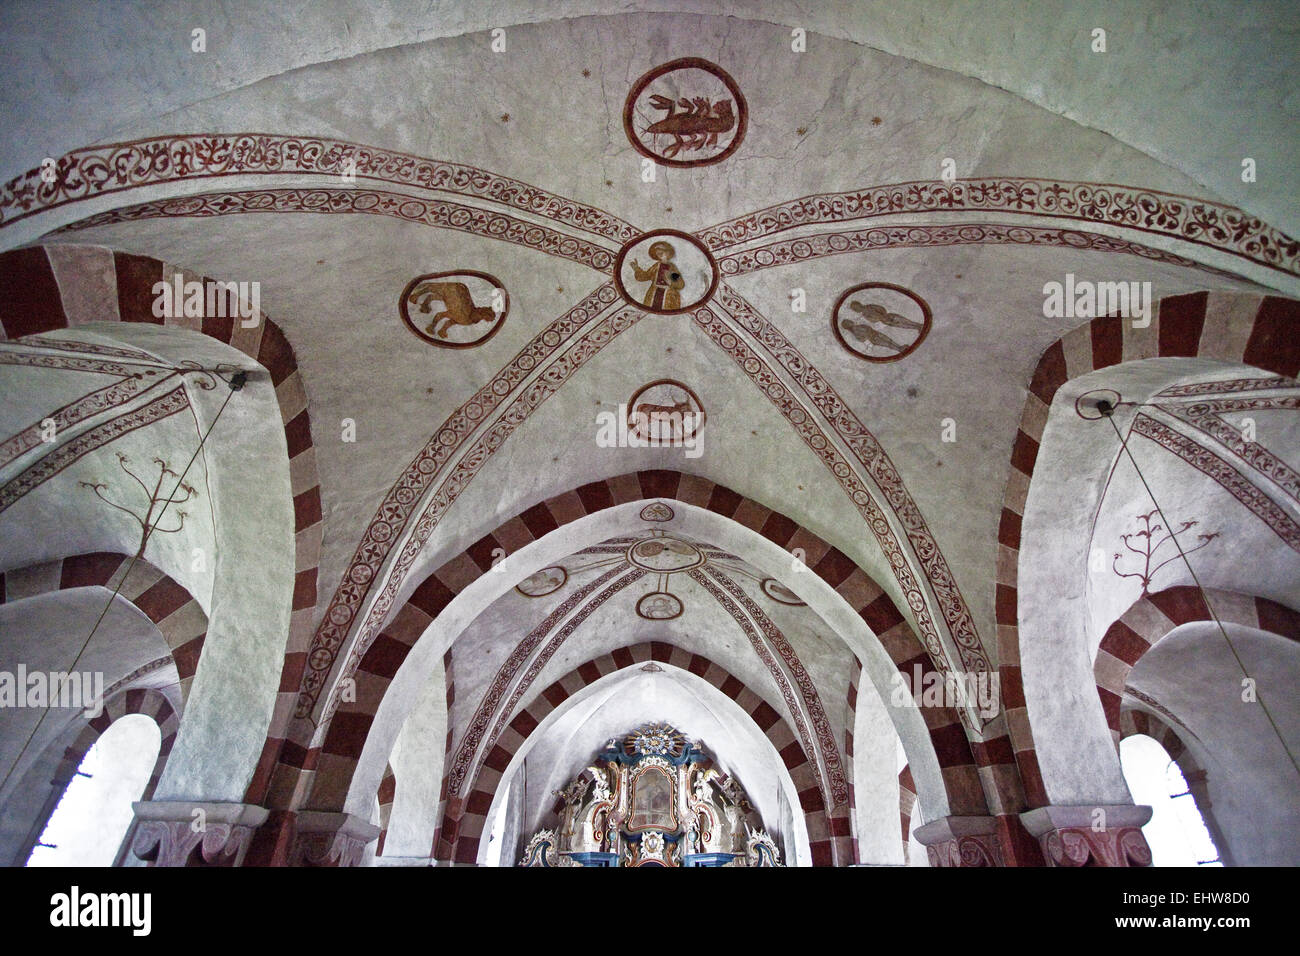 Church in Wormbach in Schmallenberg, Germany. - Stock Image